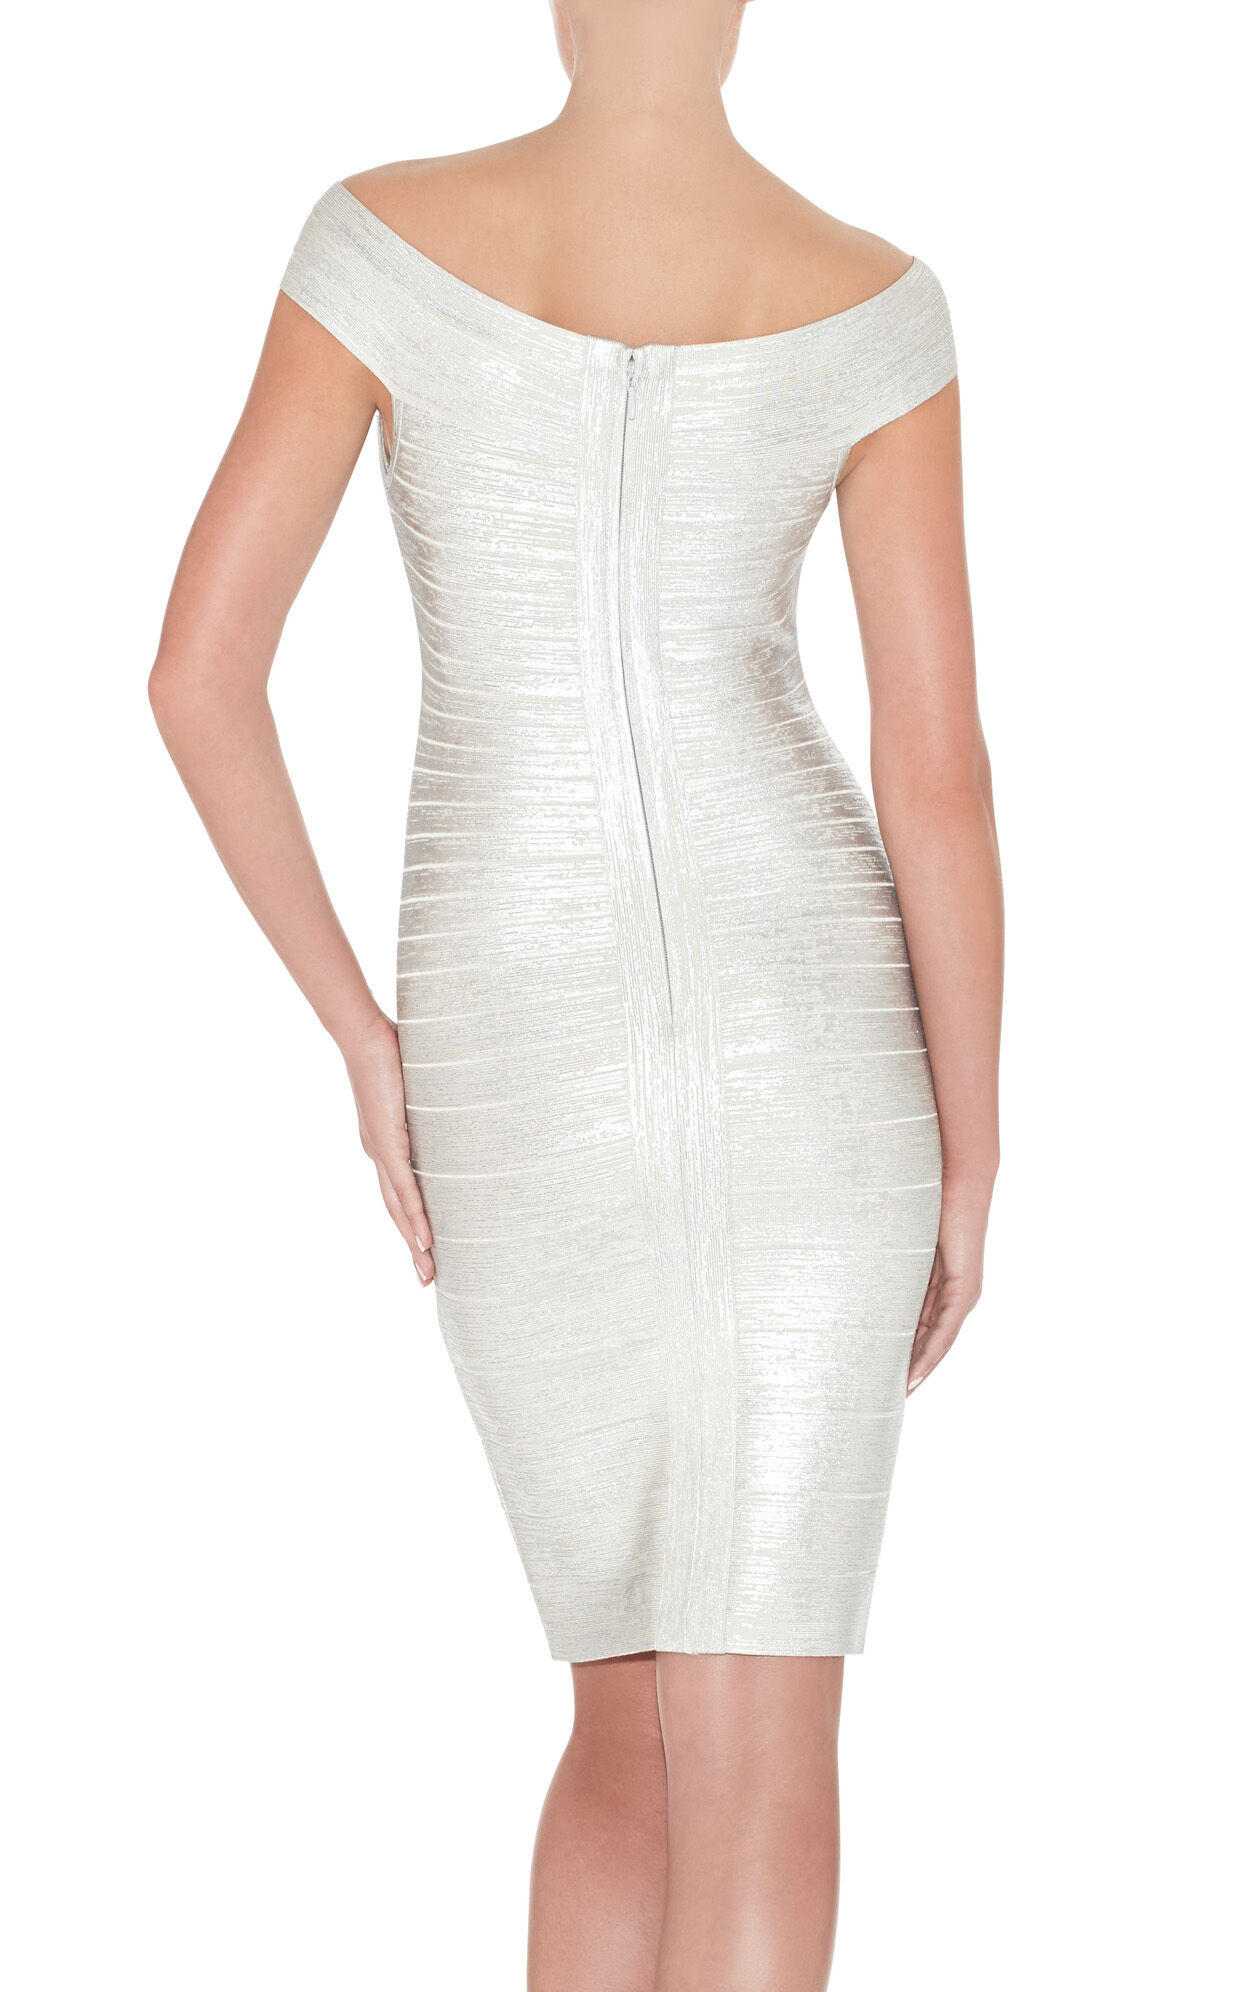 Bridget Woodgrain Foil-Print Dress